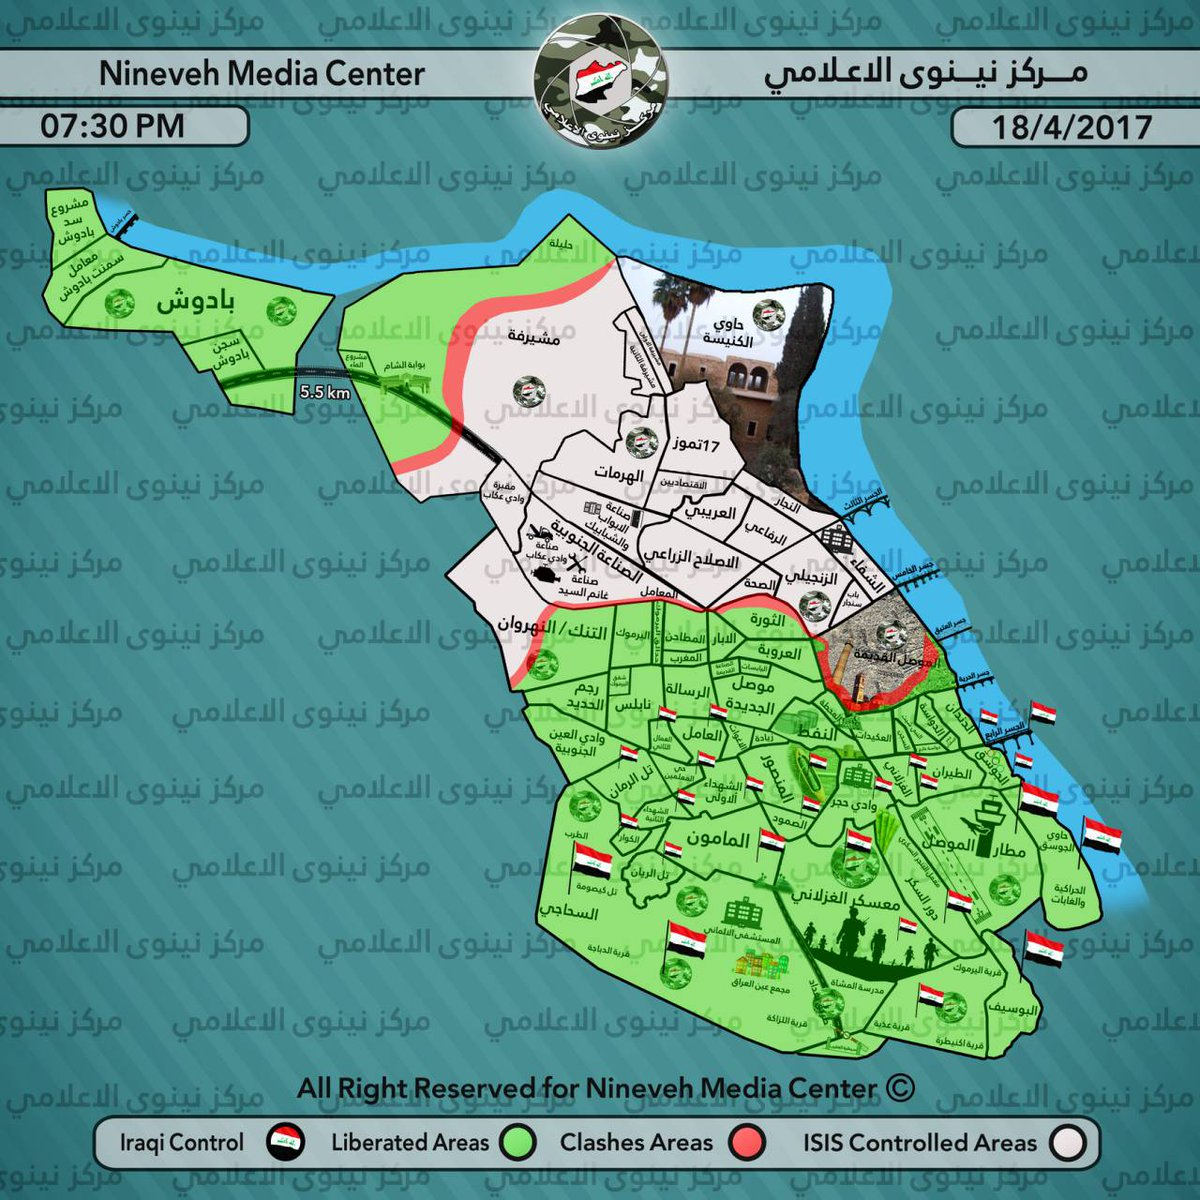 Nineveh Media Center: Last updated map of situation in Mosul